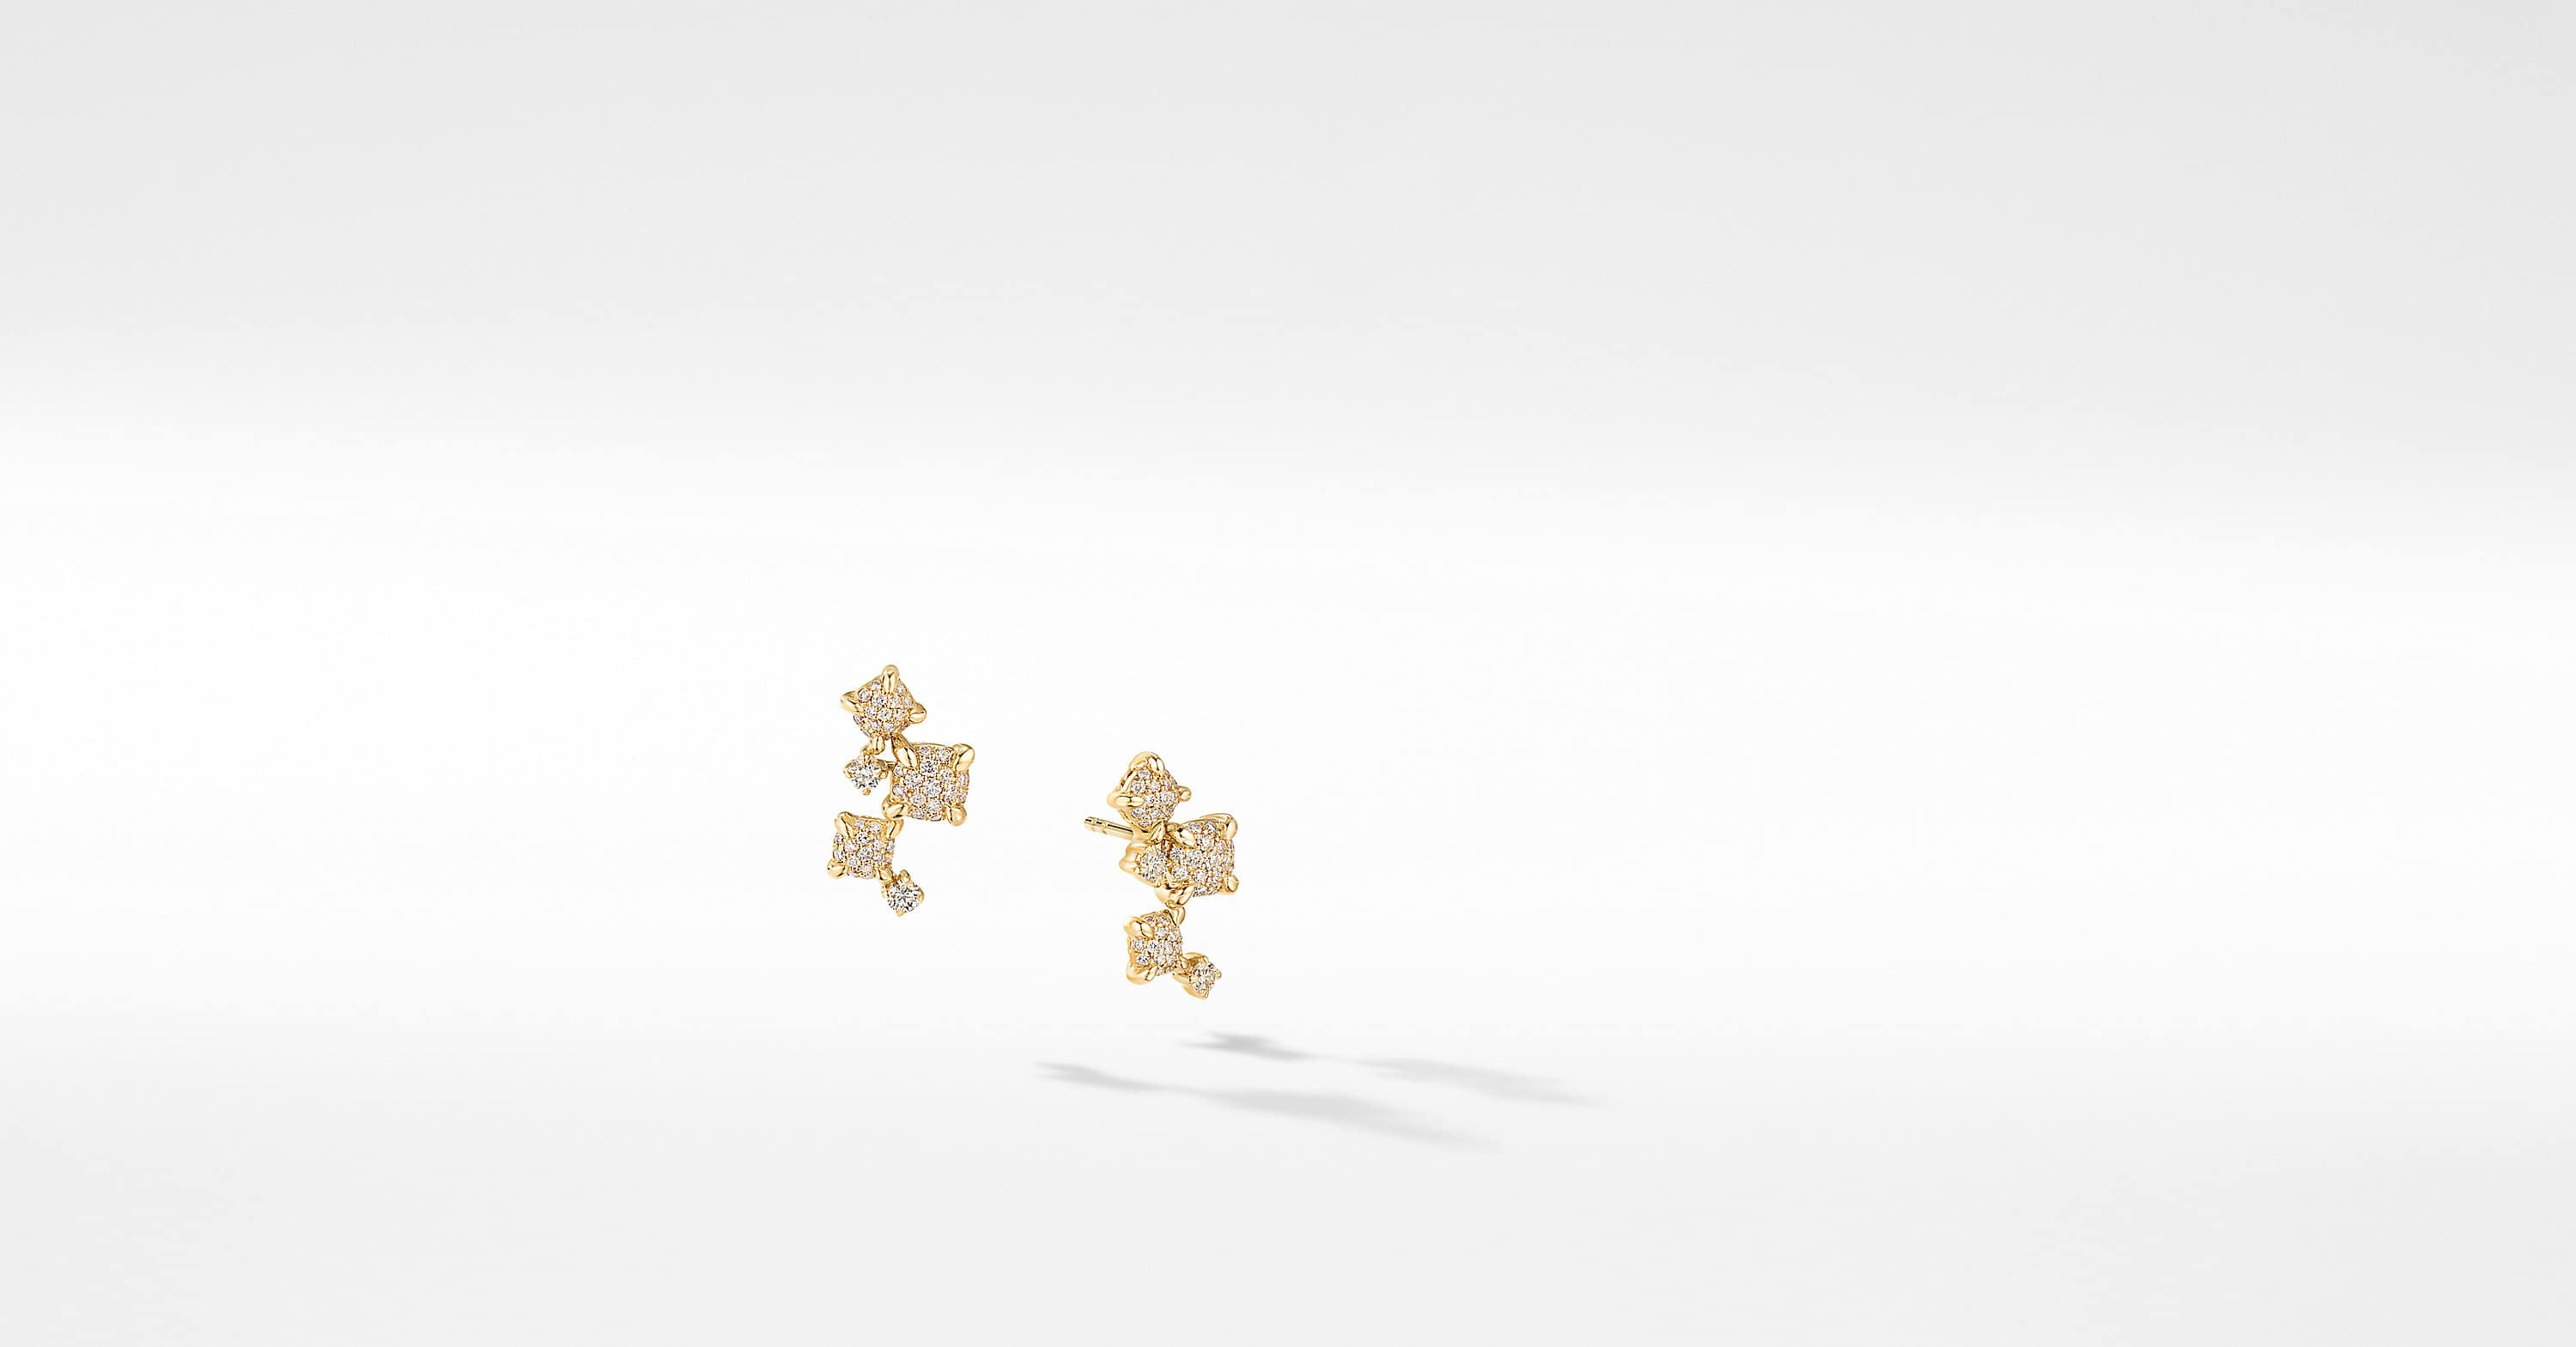 Petite Chatelaine Climber Earrings in 18K Yellow Gold with Diamonds